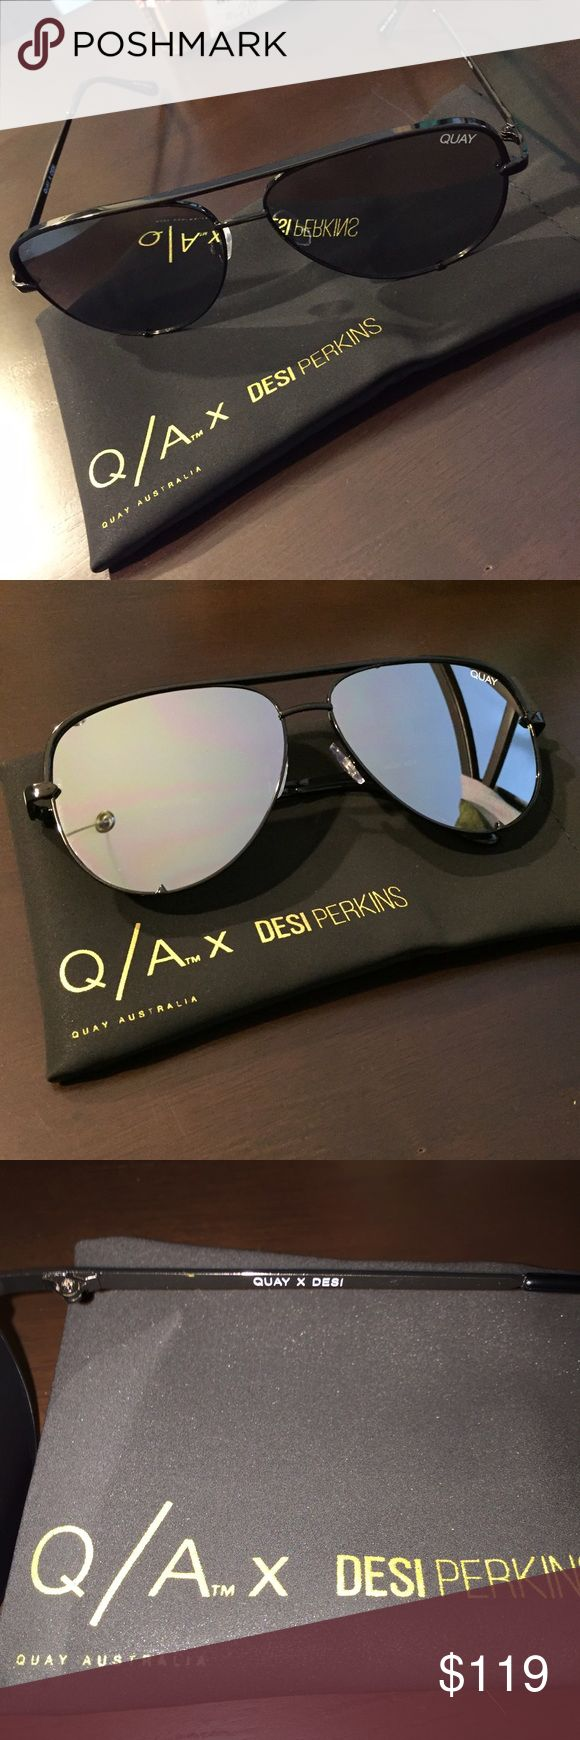 Quay x Desi High Key Black Sunglasses Brand new, never worn Quay Australia x Desi Perkins sunglasses. The shade is High Key Black and they are a mirror flat lens. Gorgeous sunglasses but unfortunately I ordered two of the same pairs! Selling to make my money back. I will ship these NEXT DAY in the original packaging that they came in. Quay Australia Accessories Sunglasses